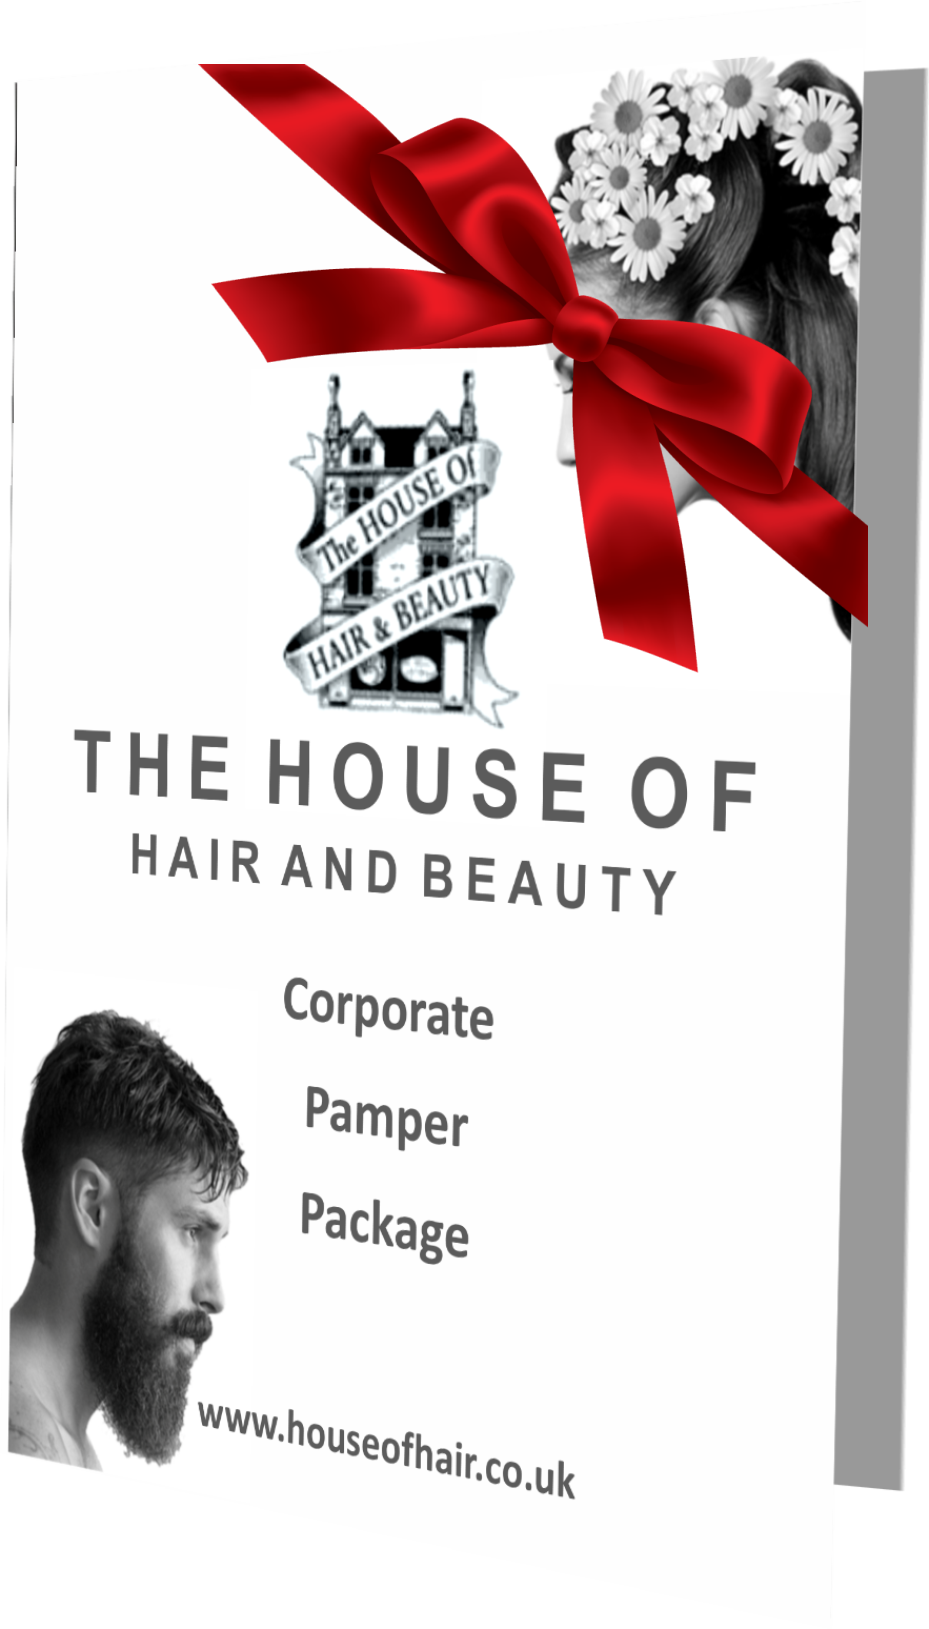 hairdresser offers House of Hair & Beauty